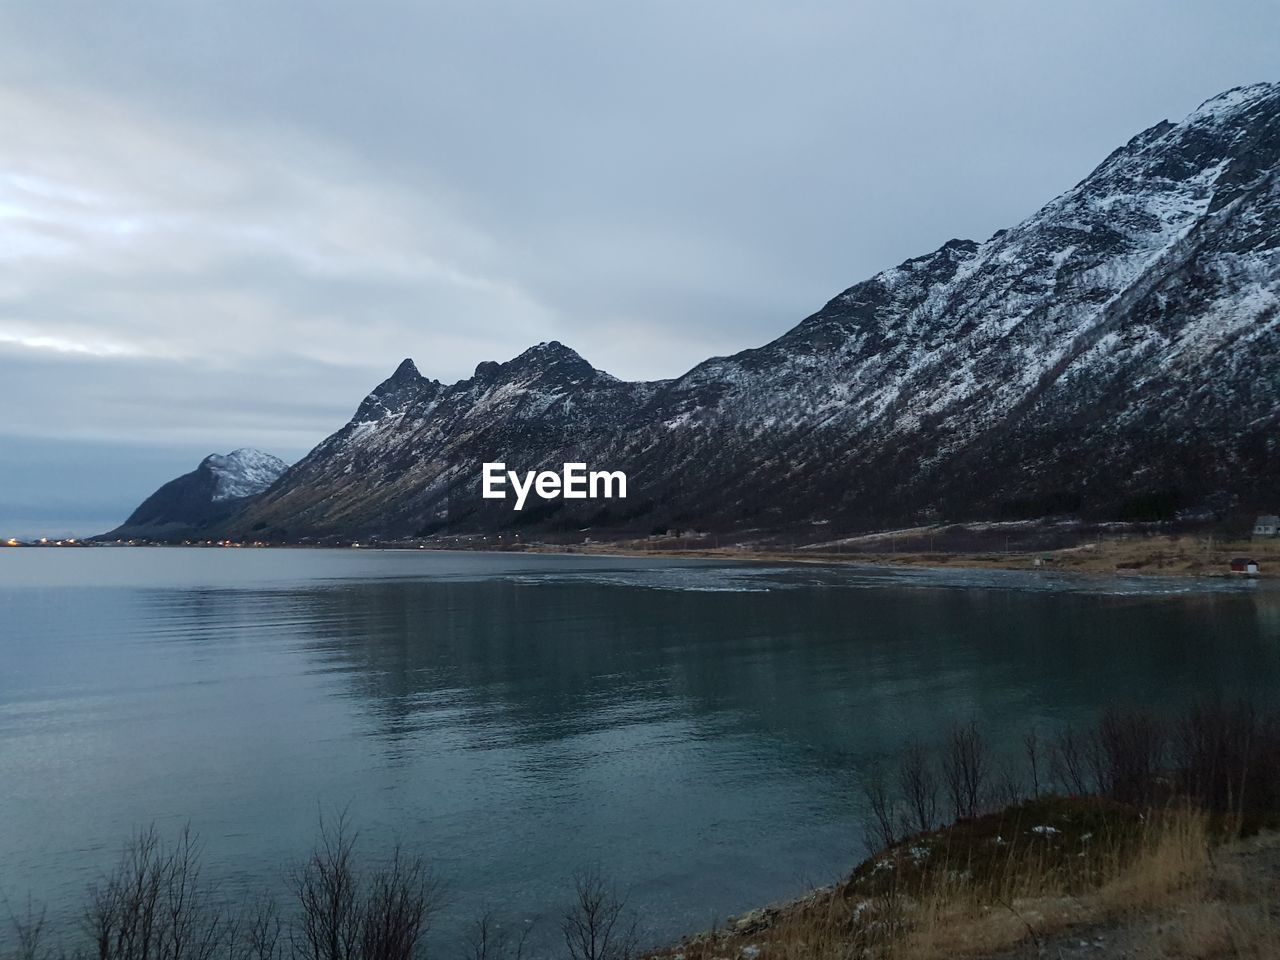 water, mountain, sky, beauty in nature, lake, scenics - nature, tranquil scene, tranquility, cold temperature, nature, no people, idyllic, waterfront, day, cloud - sky, reflection, non-urban scene, mountain range, environment, outdoors